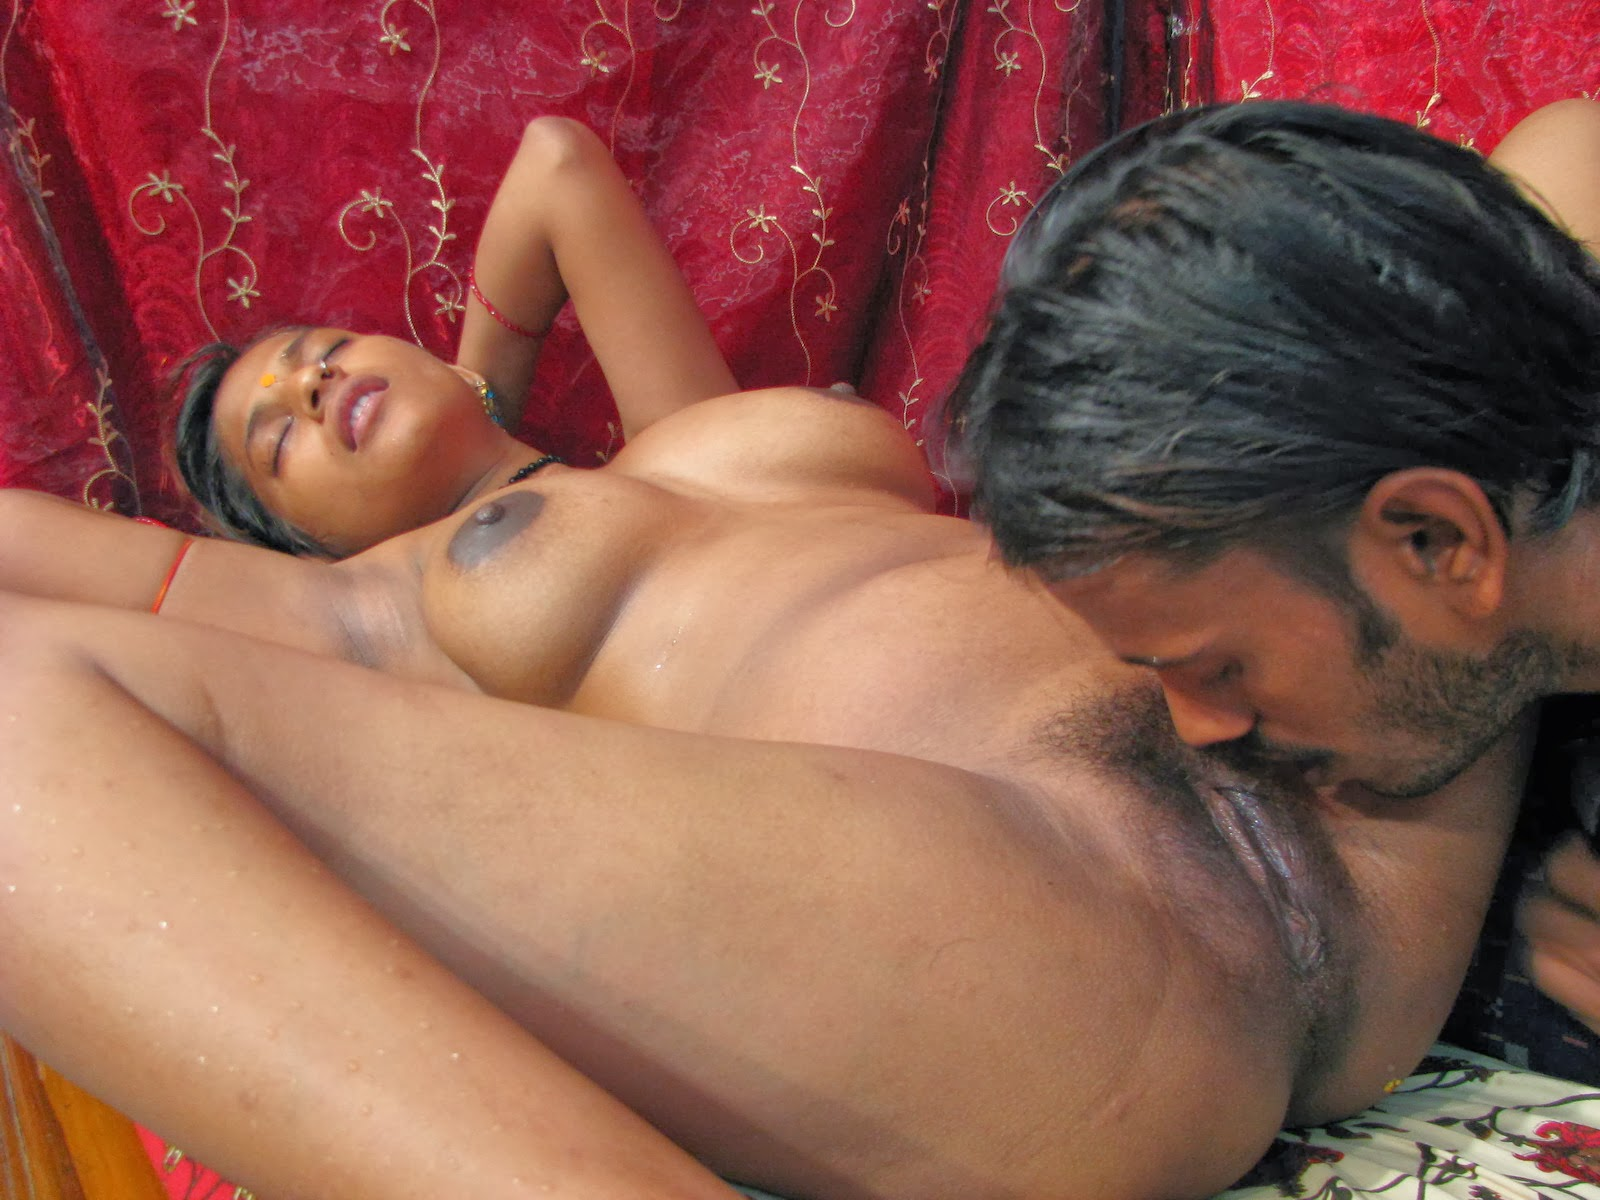 Confirm. Indian antys nude pussy photos excited